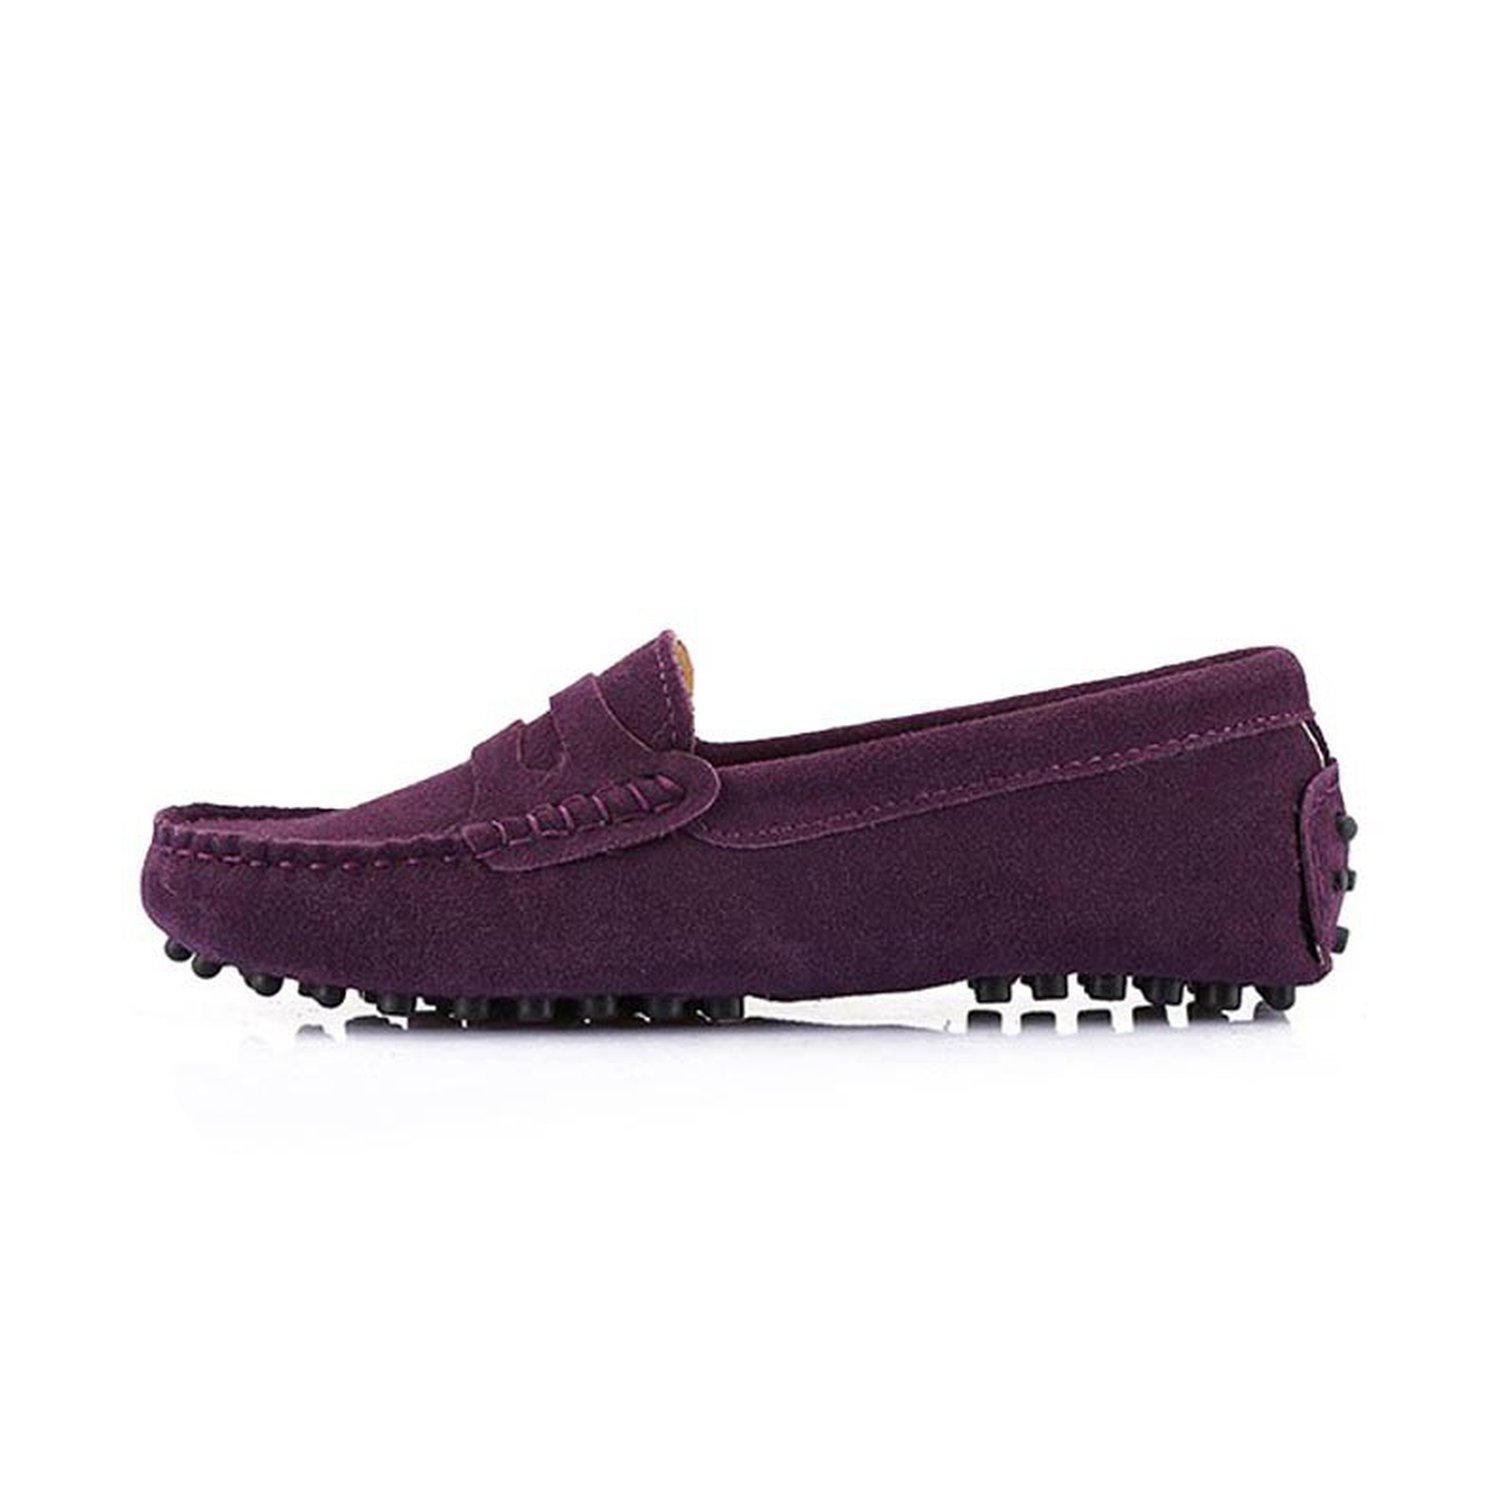 2018 New Women Flats Genuine Leather Driving Shoes Summer Women Casual Shoes B07DV3HHMW 7 B(M) US|Dark Purple